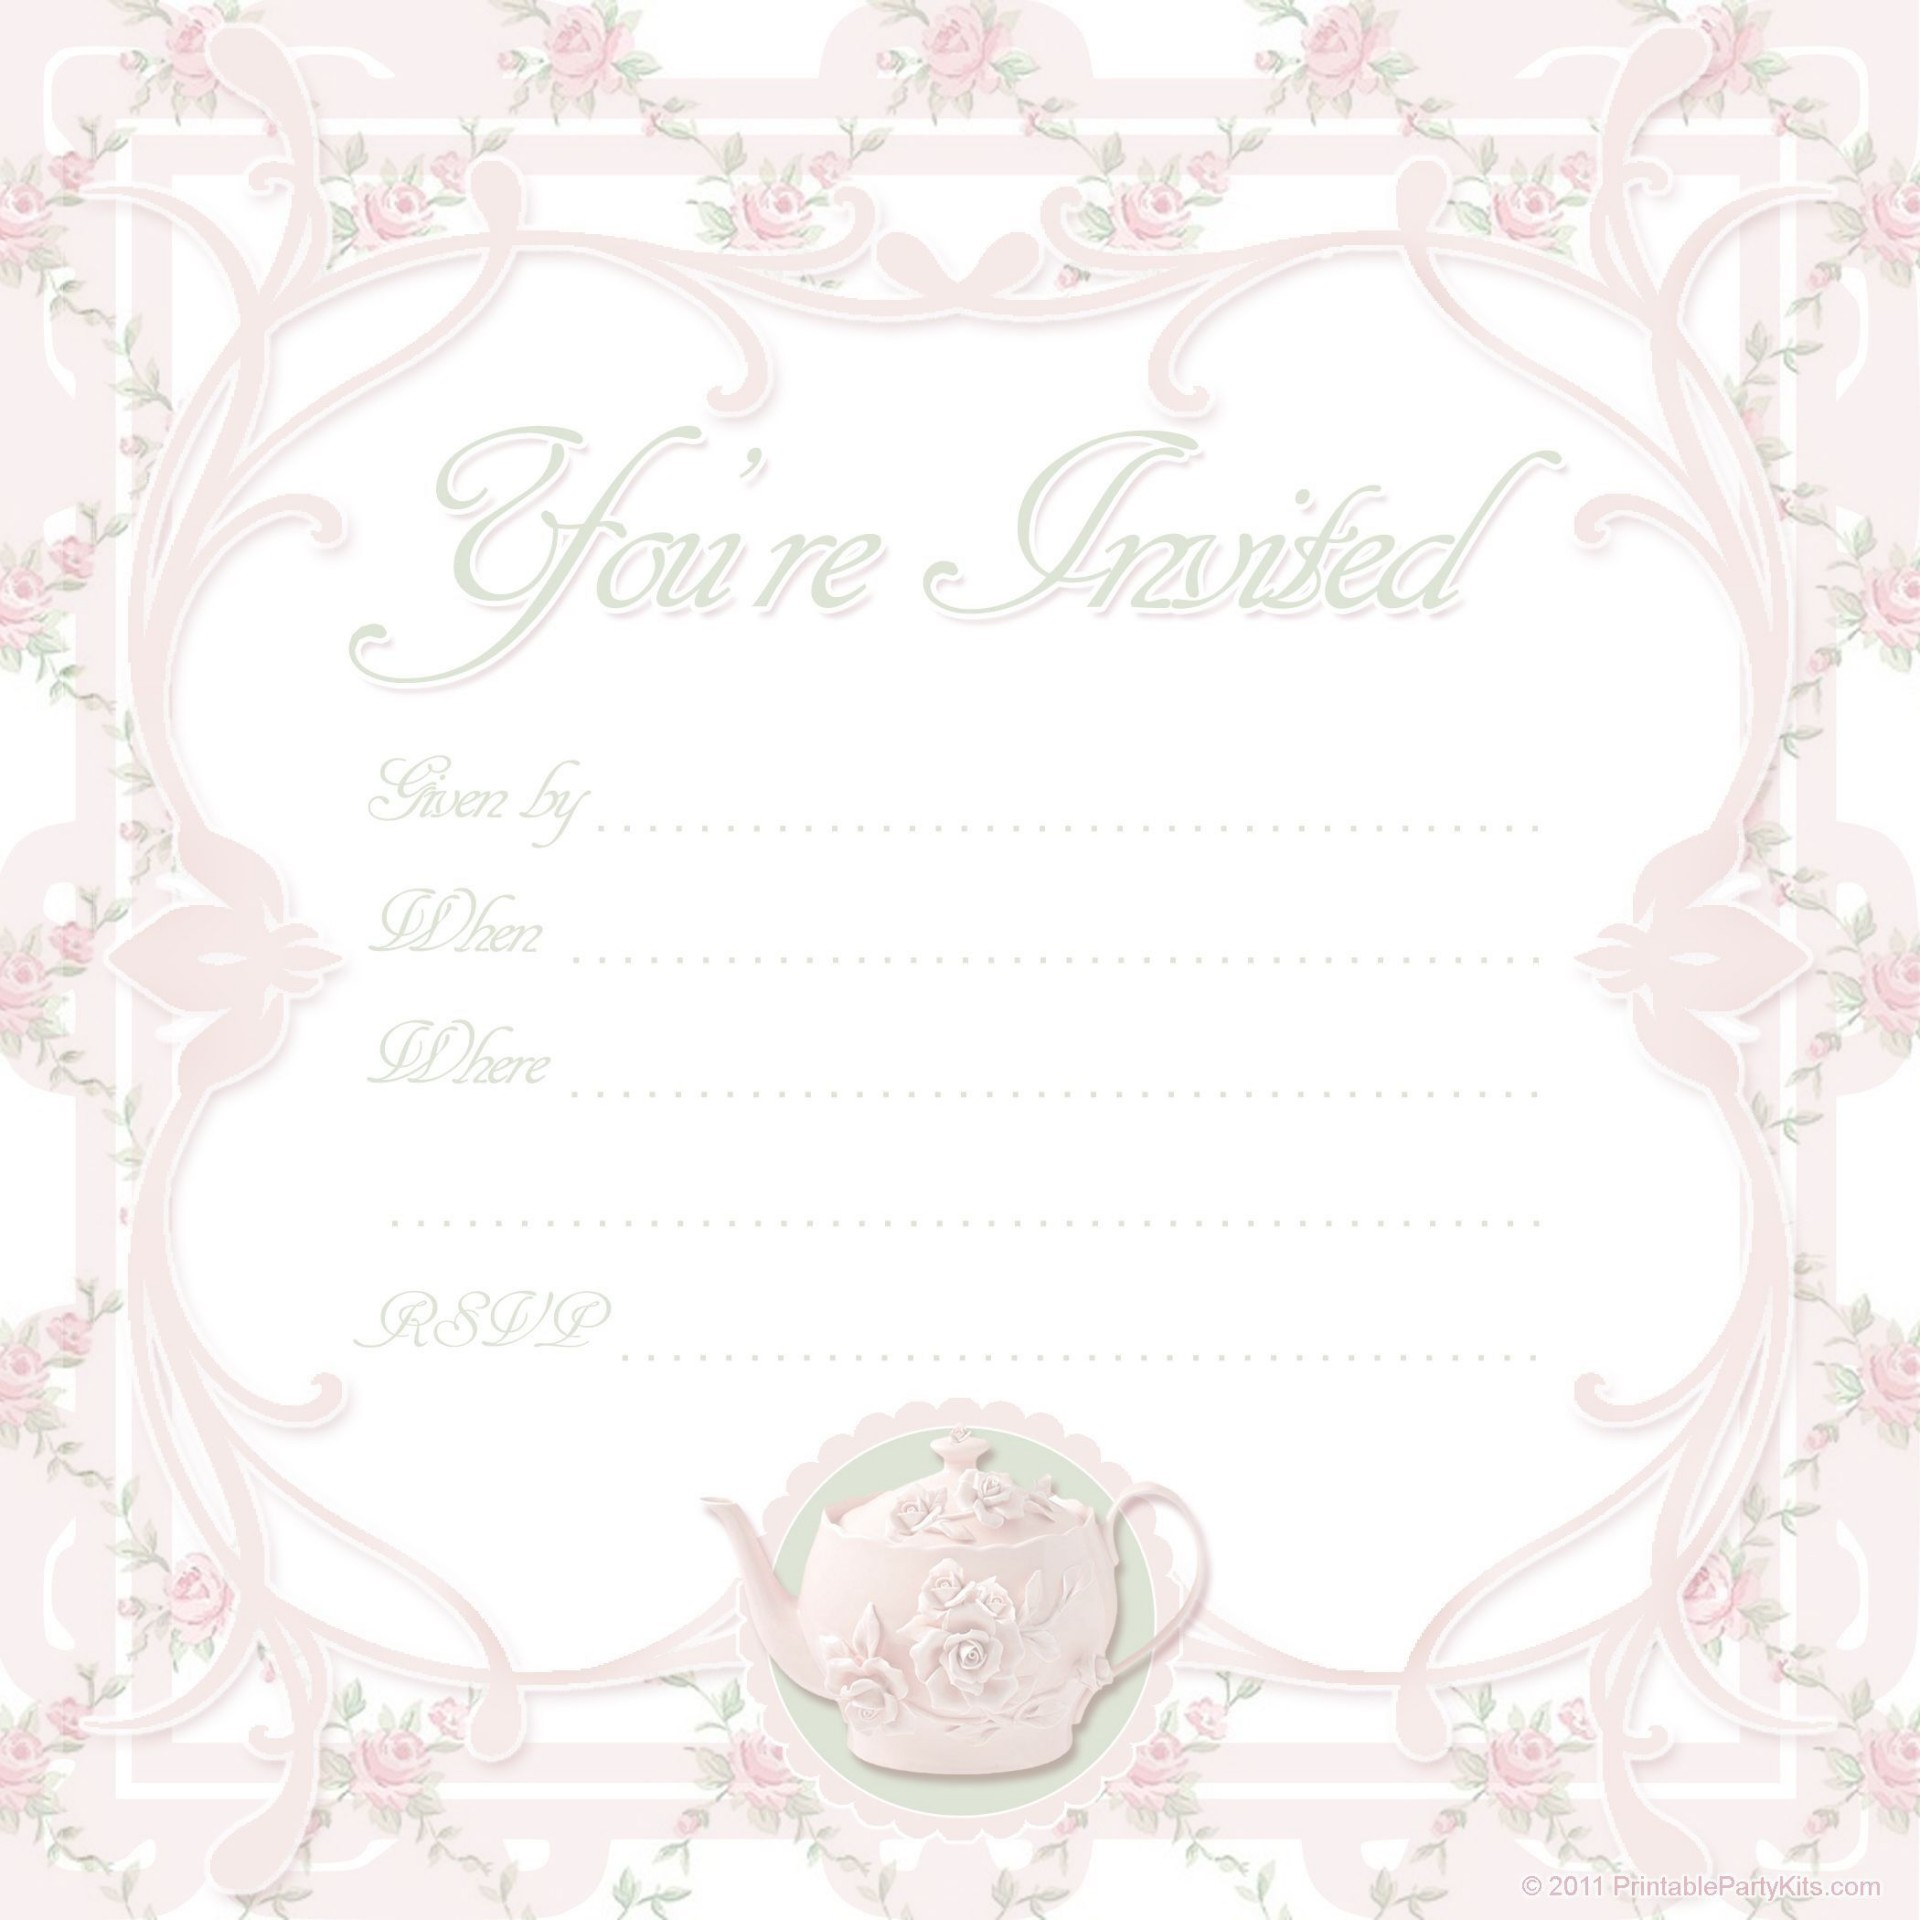 000 Awesome Tea Party Invitation Template High Def  Online Letter1920